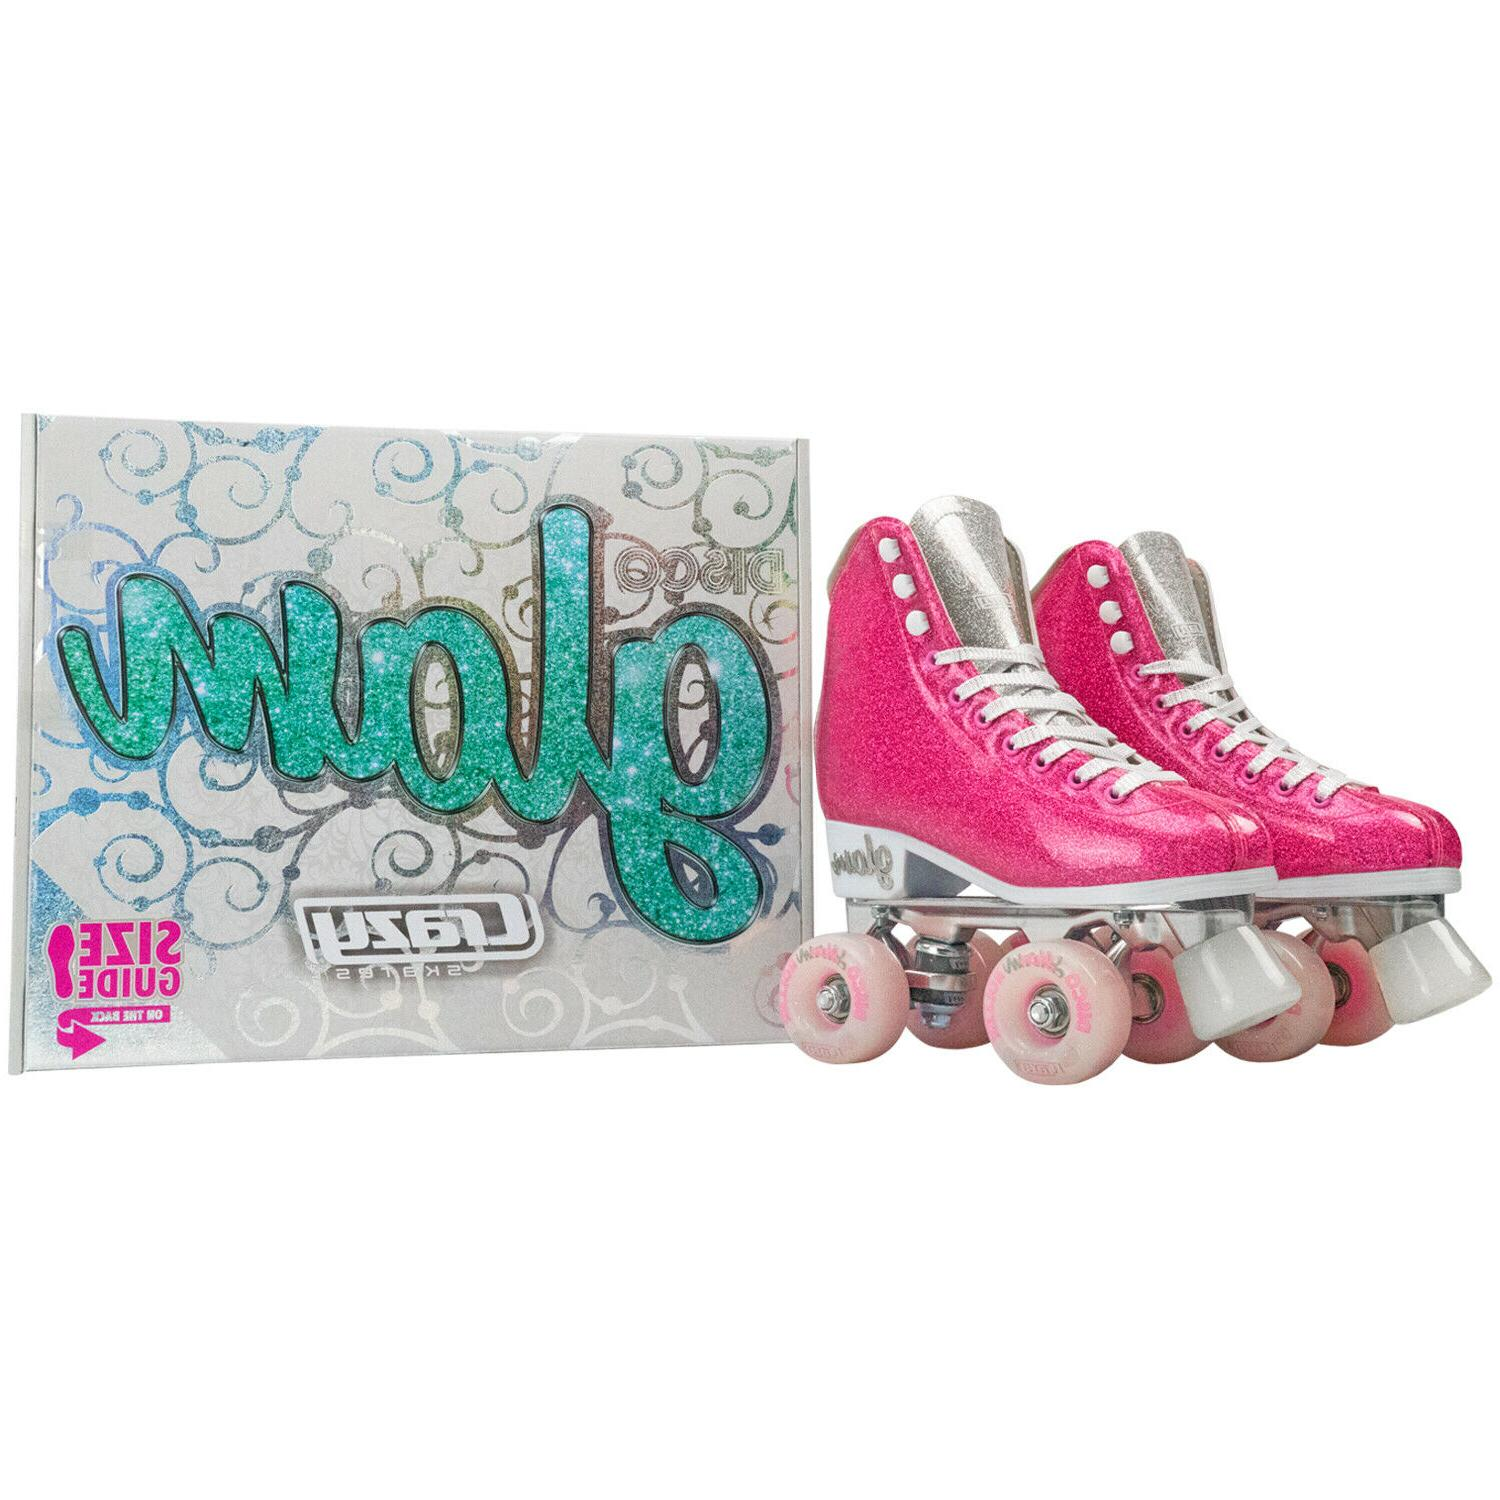 Glam Roller Skates by Crazy Quad for | Pink